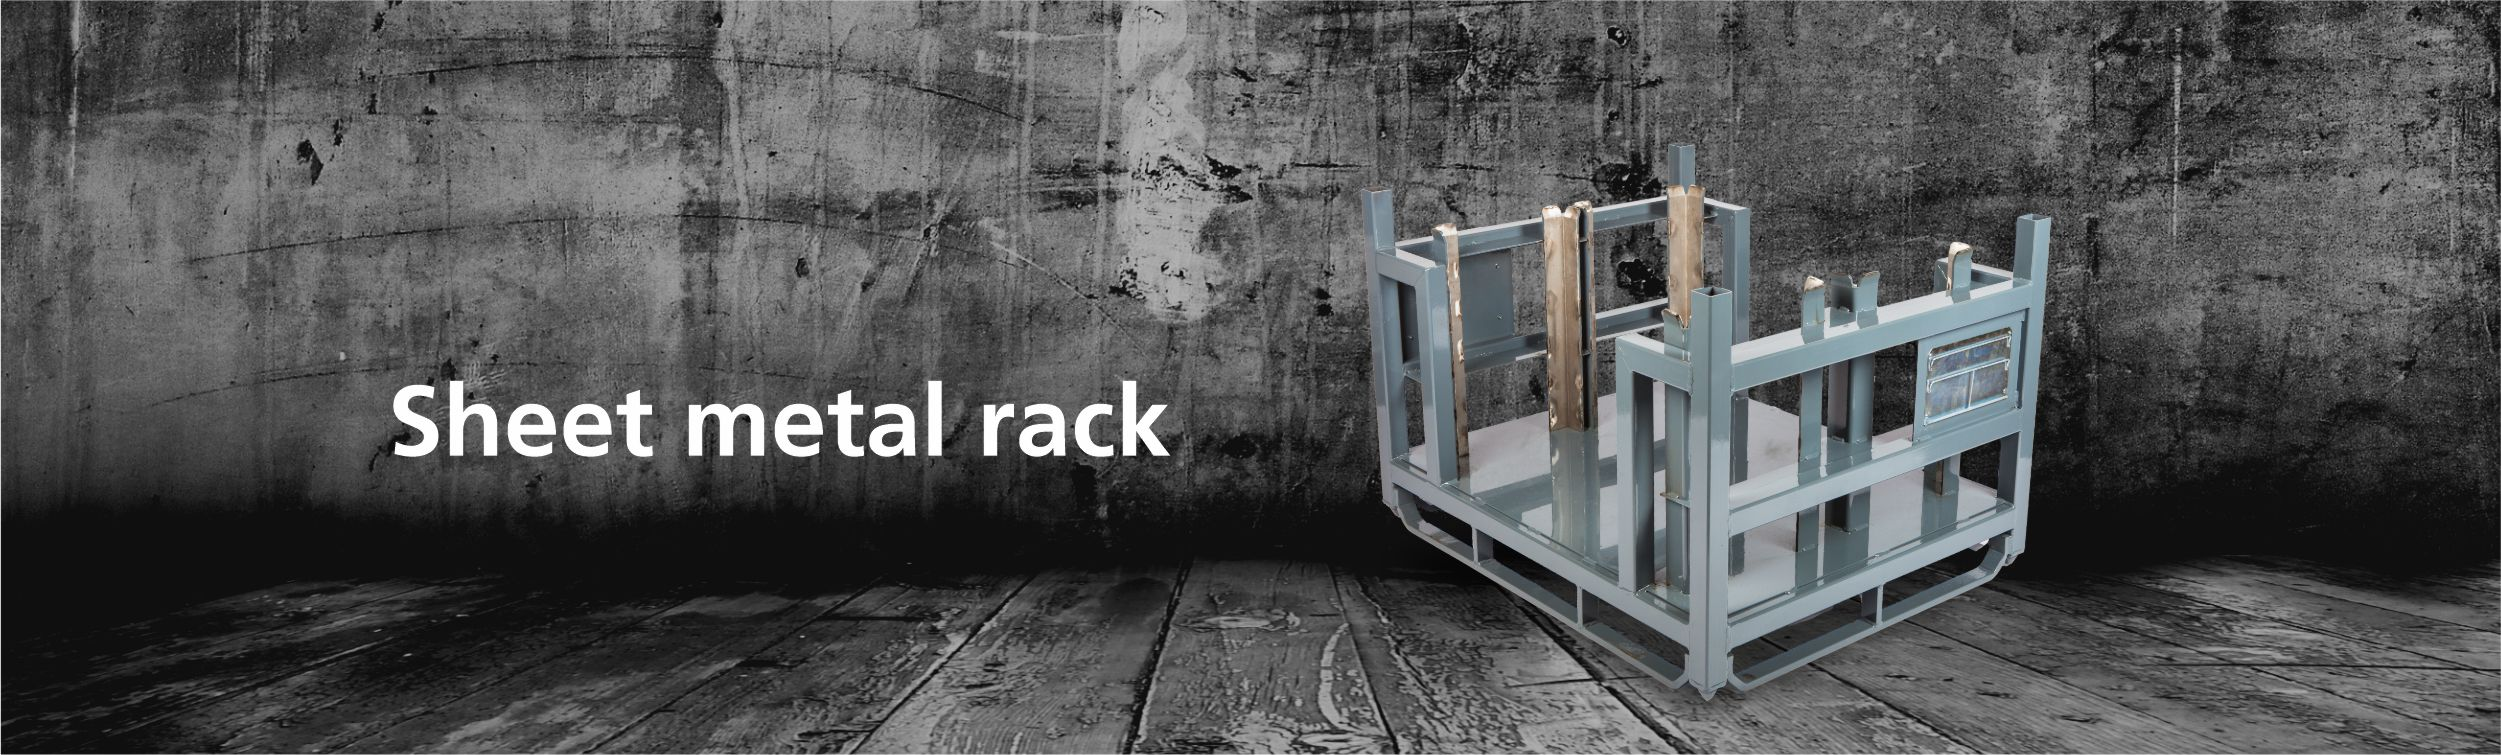 sheet_metal_rack